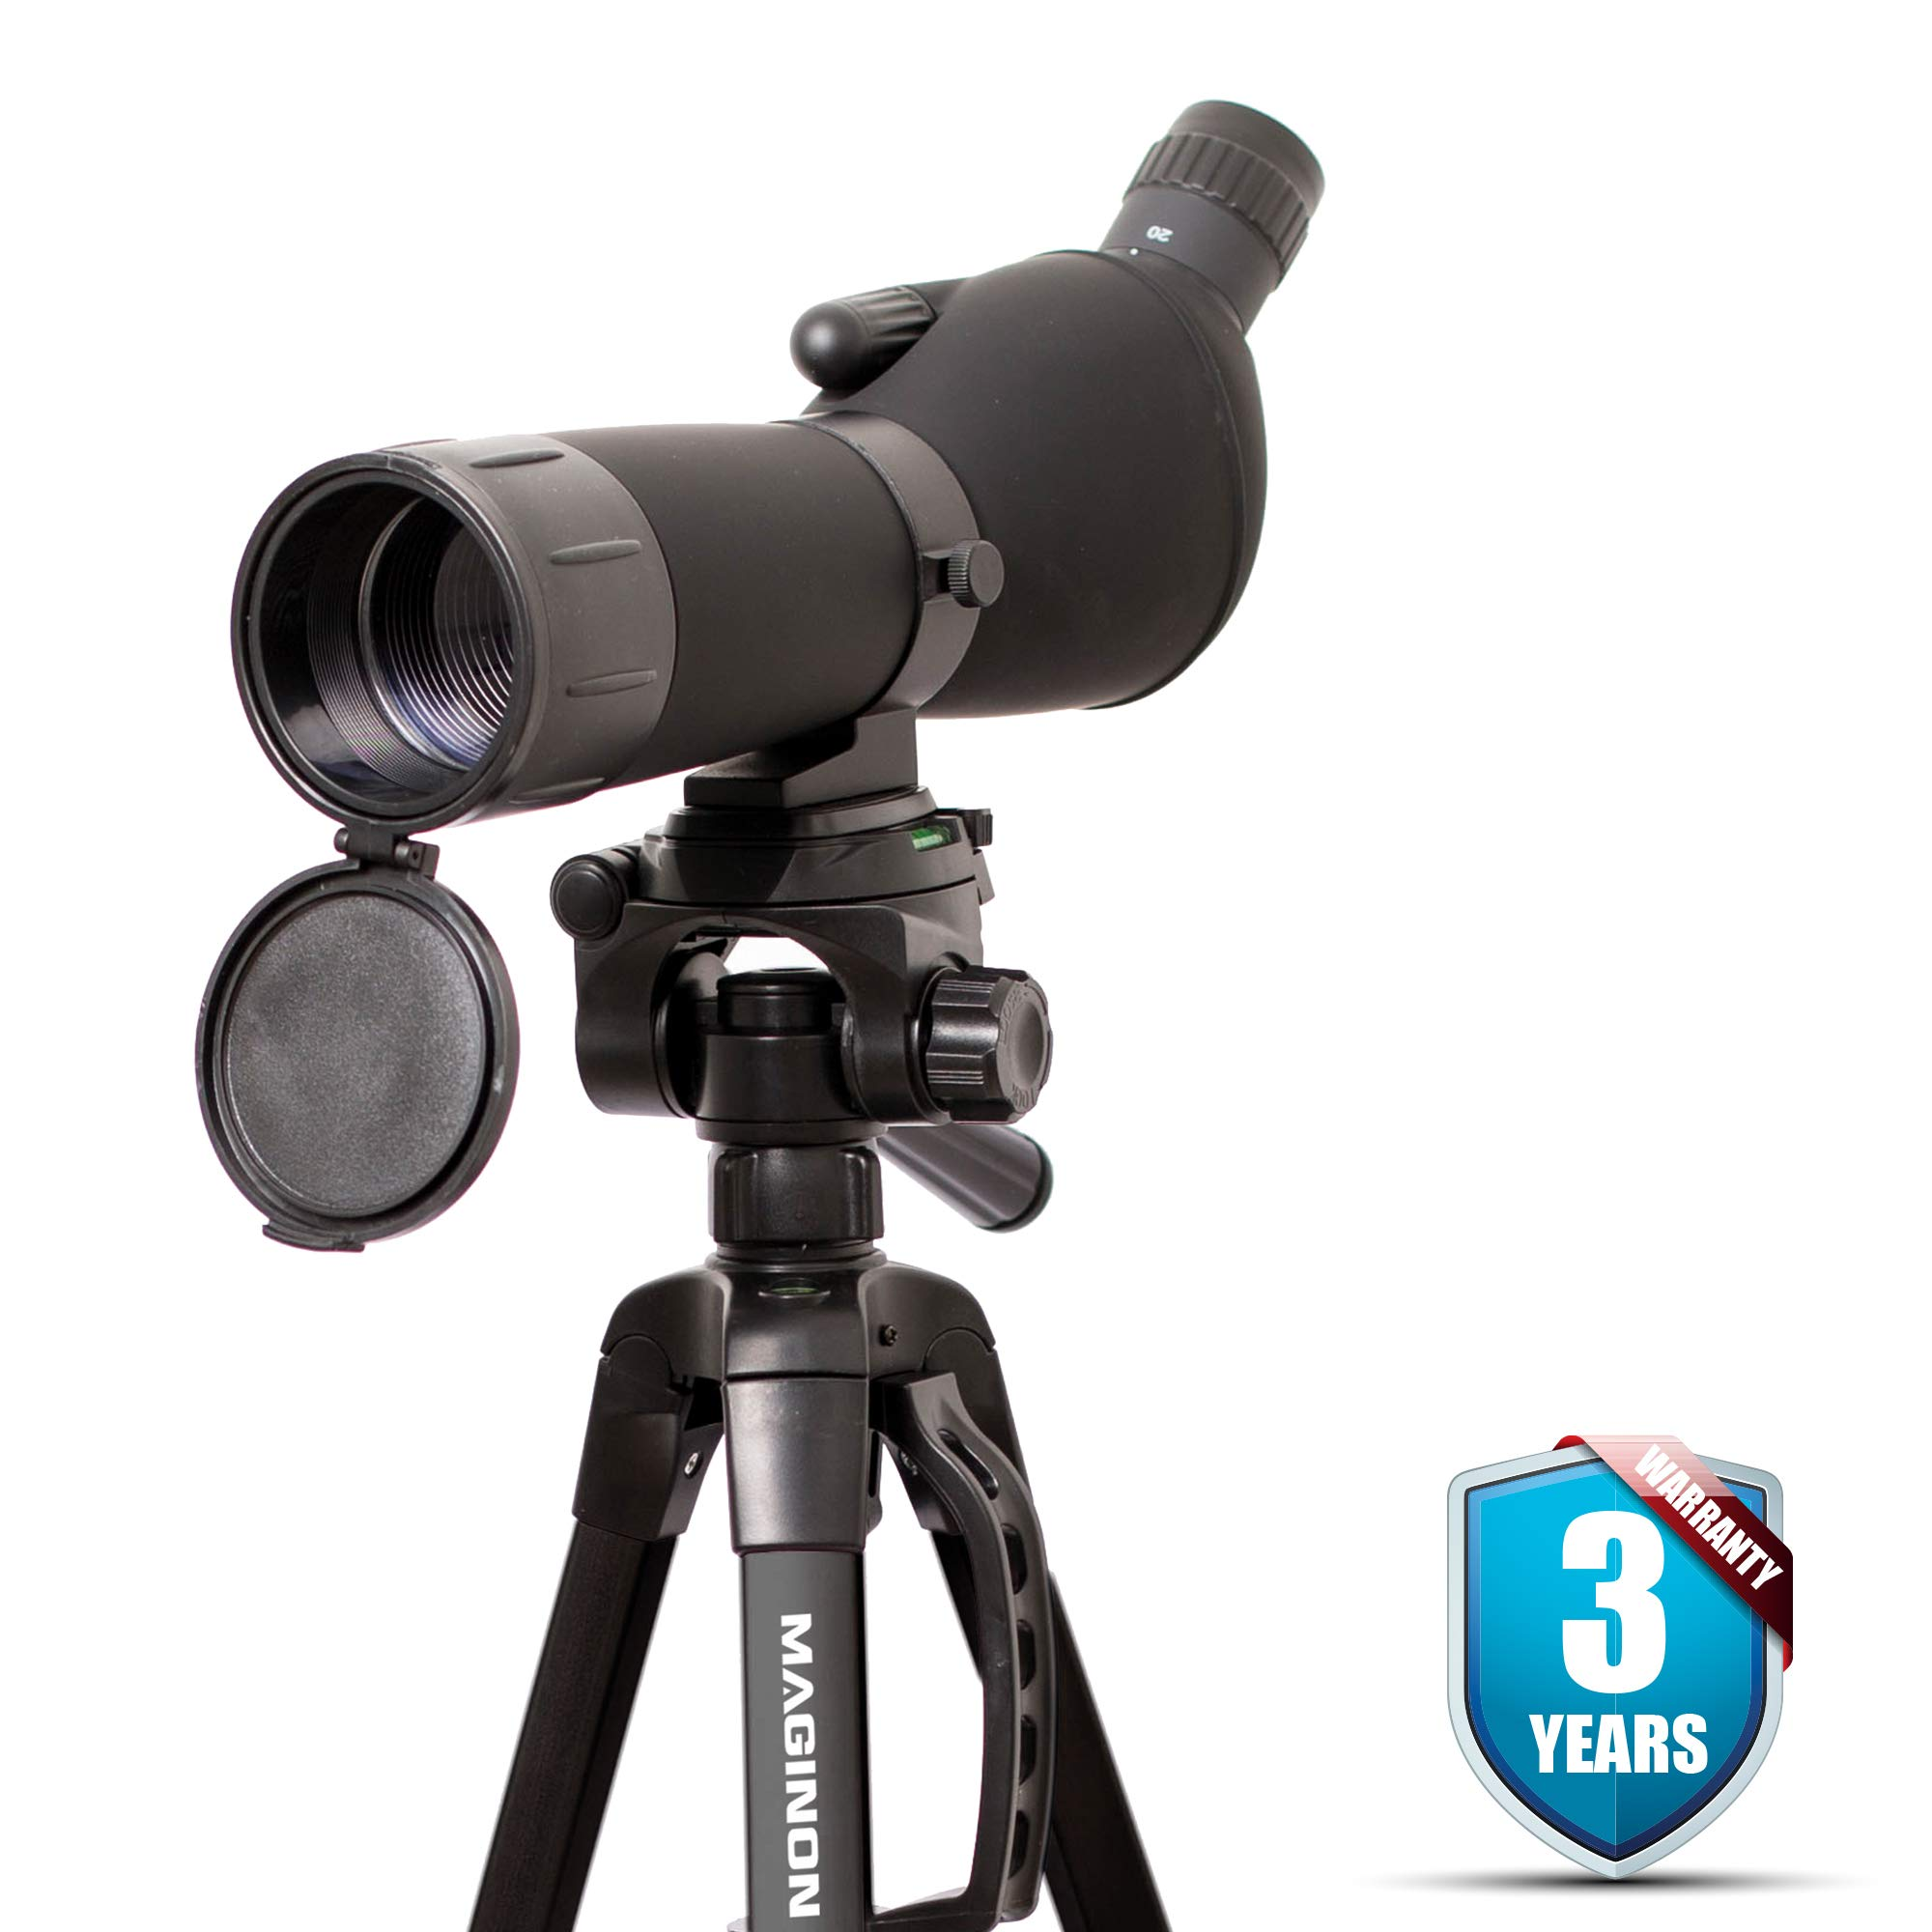 Maginon Hi Definition Spotting Scope with Tripod 20-60x60 Zoom for Bird Watching Target Shooting or Hunting by Maginon